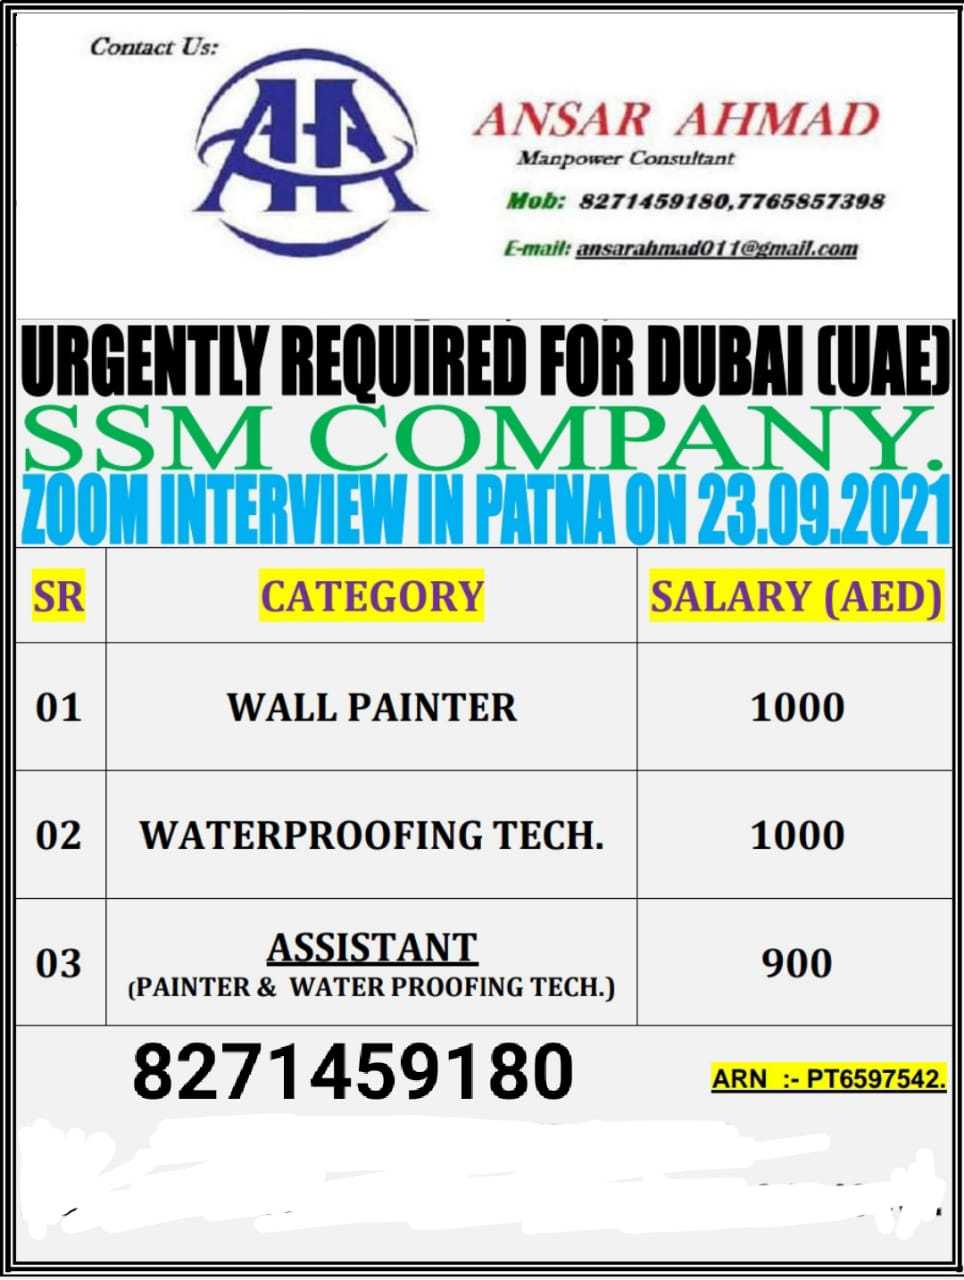 client interview in patna